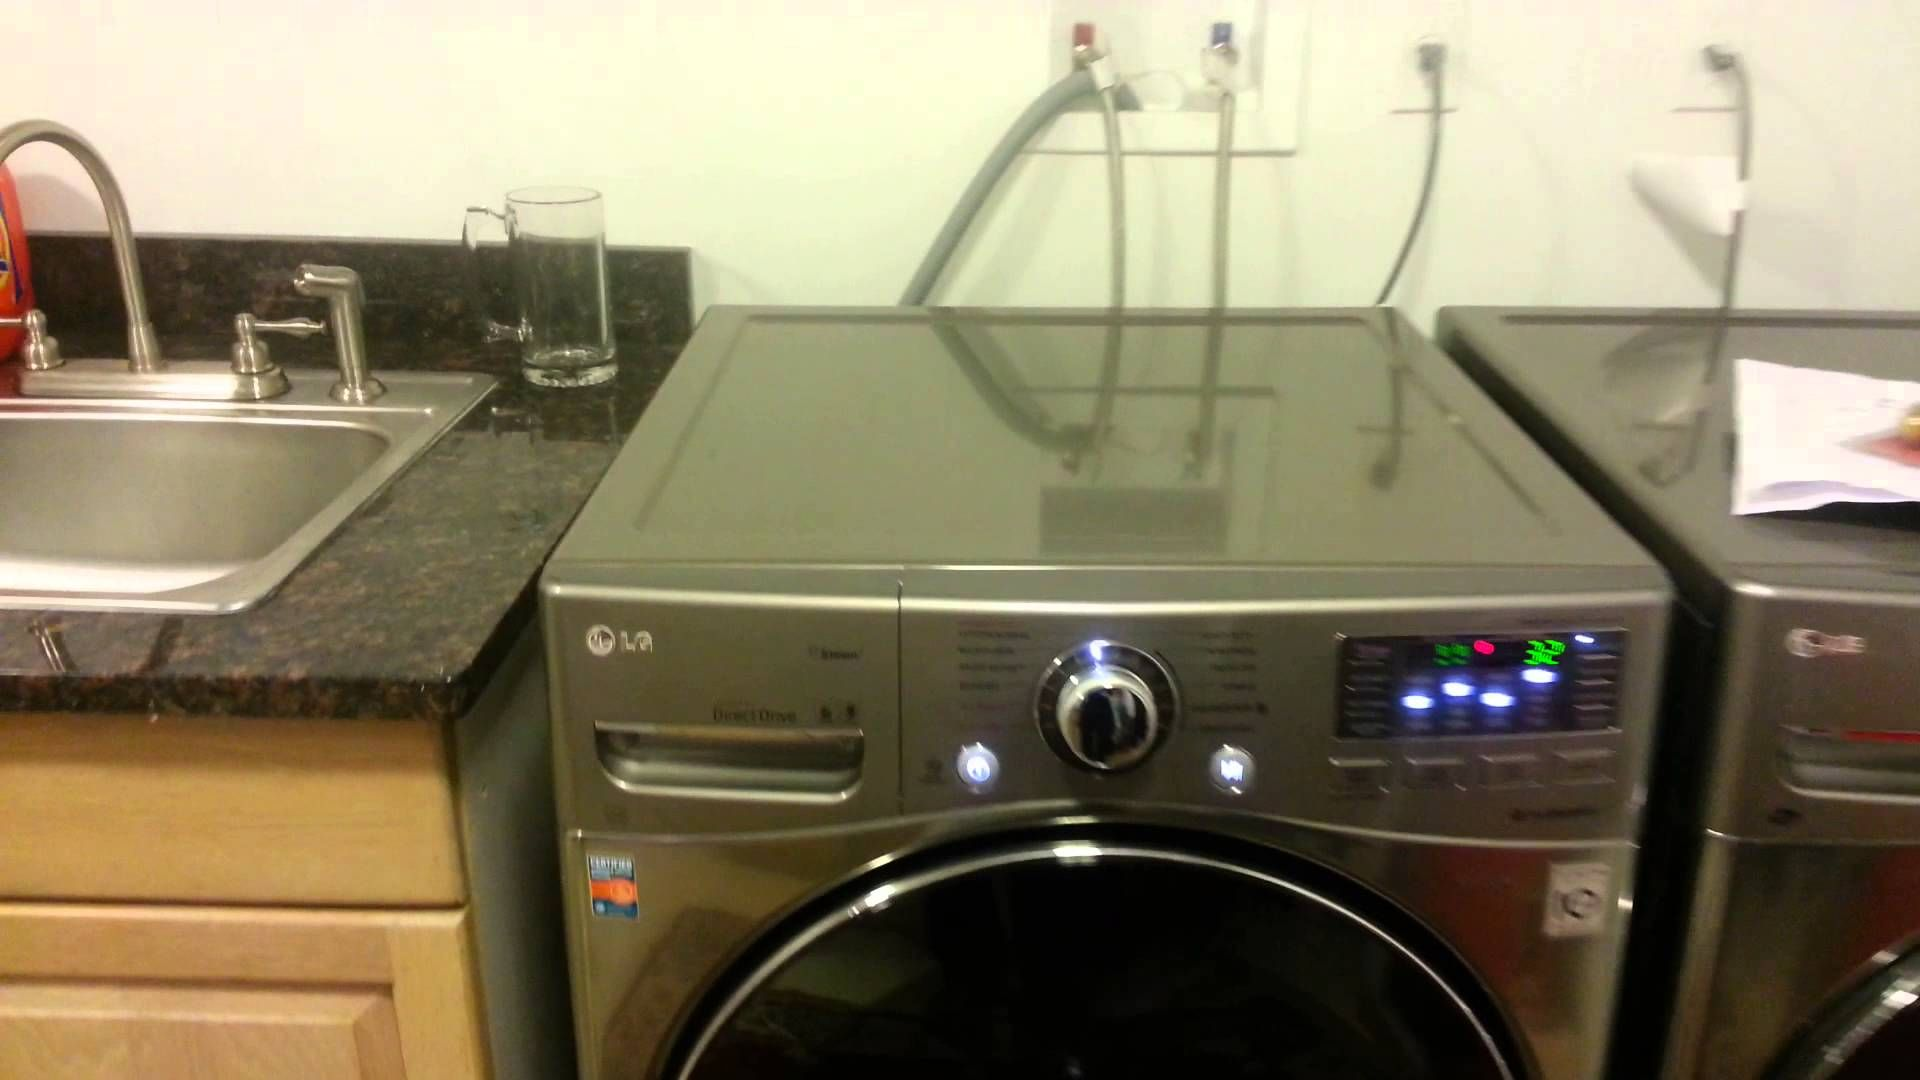 Whirlpool Washer Banging On Spin Cycle